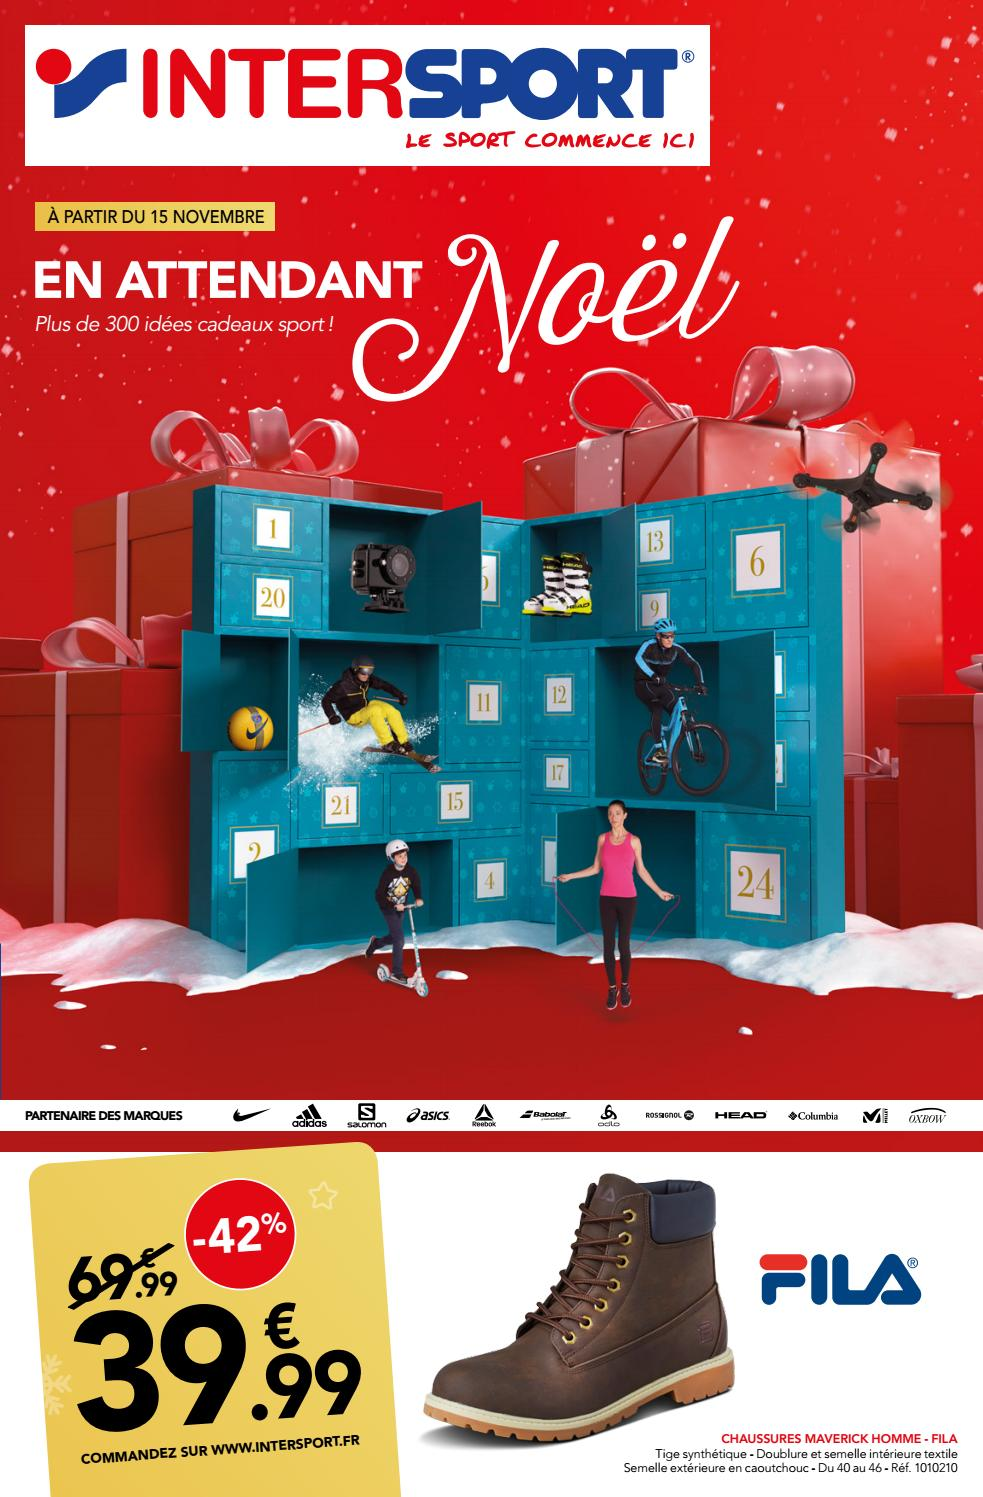 authentic quality factory outlets reasonable price INTERSPORT - NOEL CADEAUX SPORT by INTERSPORT France - issuu